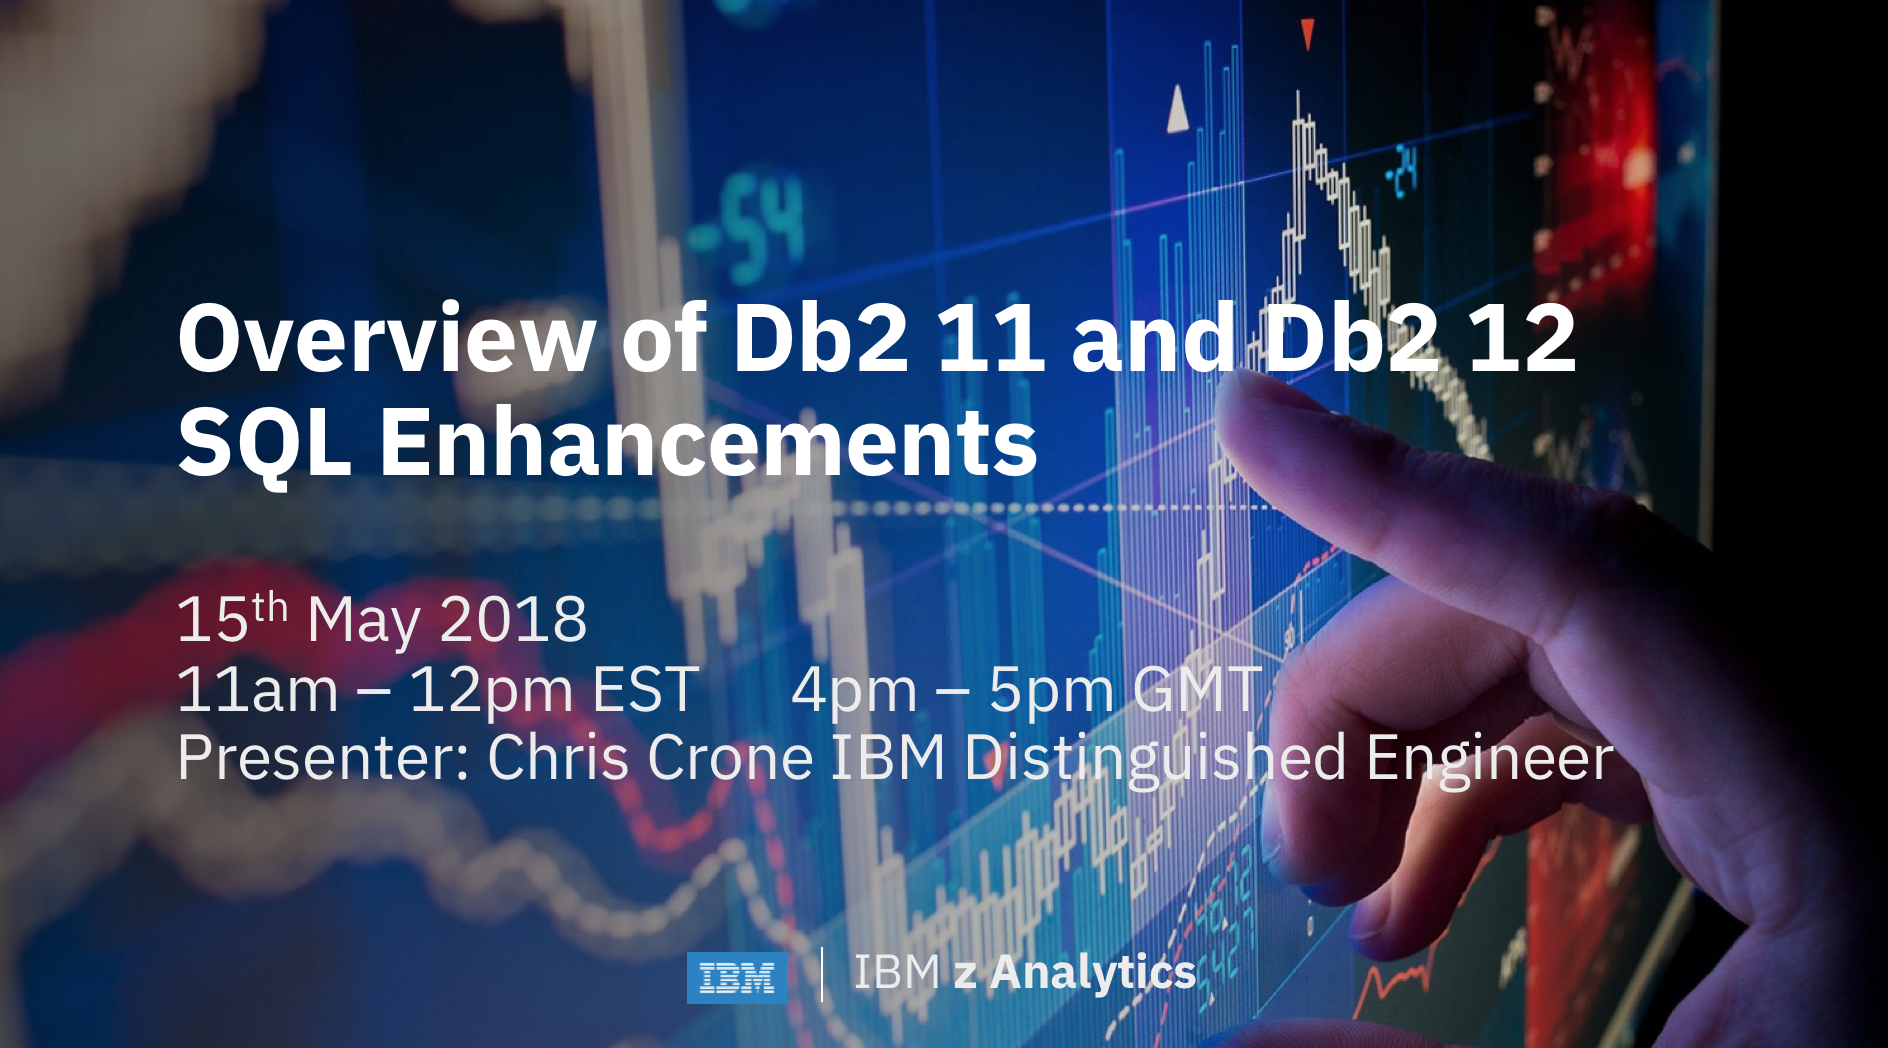 Overview of Db2 11 and Db2 12 SQL Enhancements